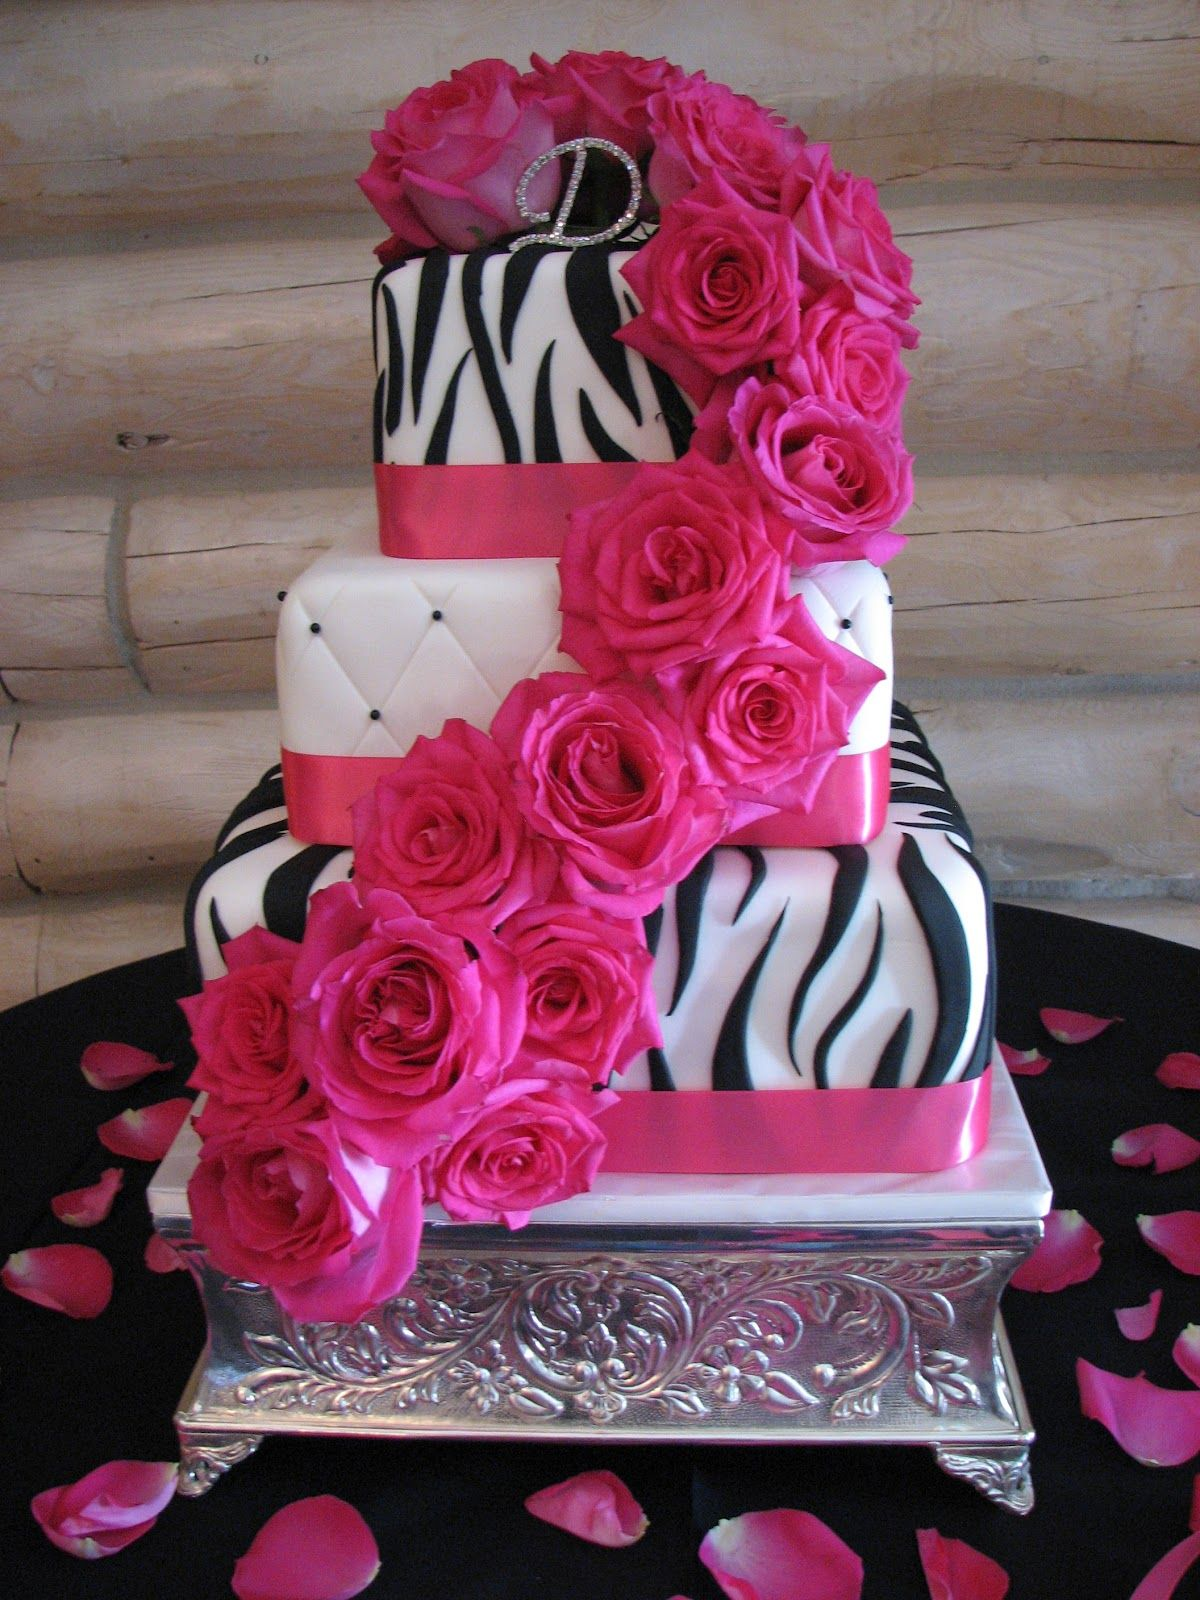 fuchsia wedding cakes | decadent designs: leandra's black/pink